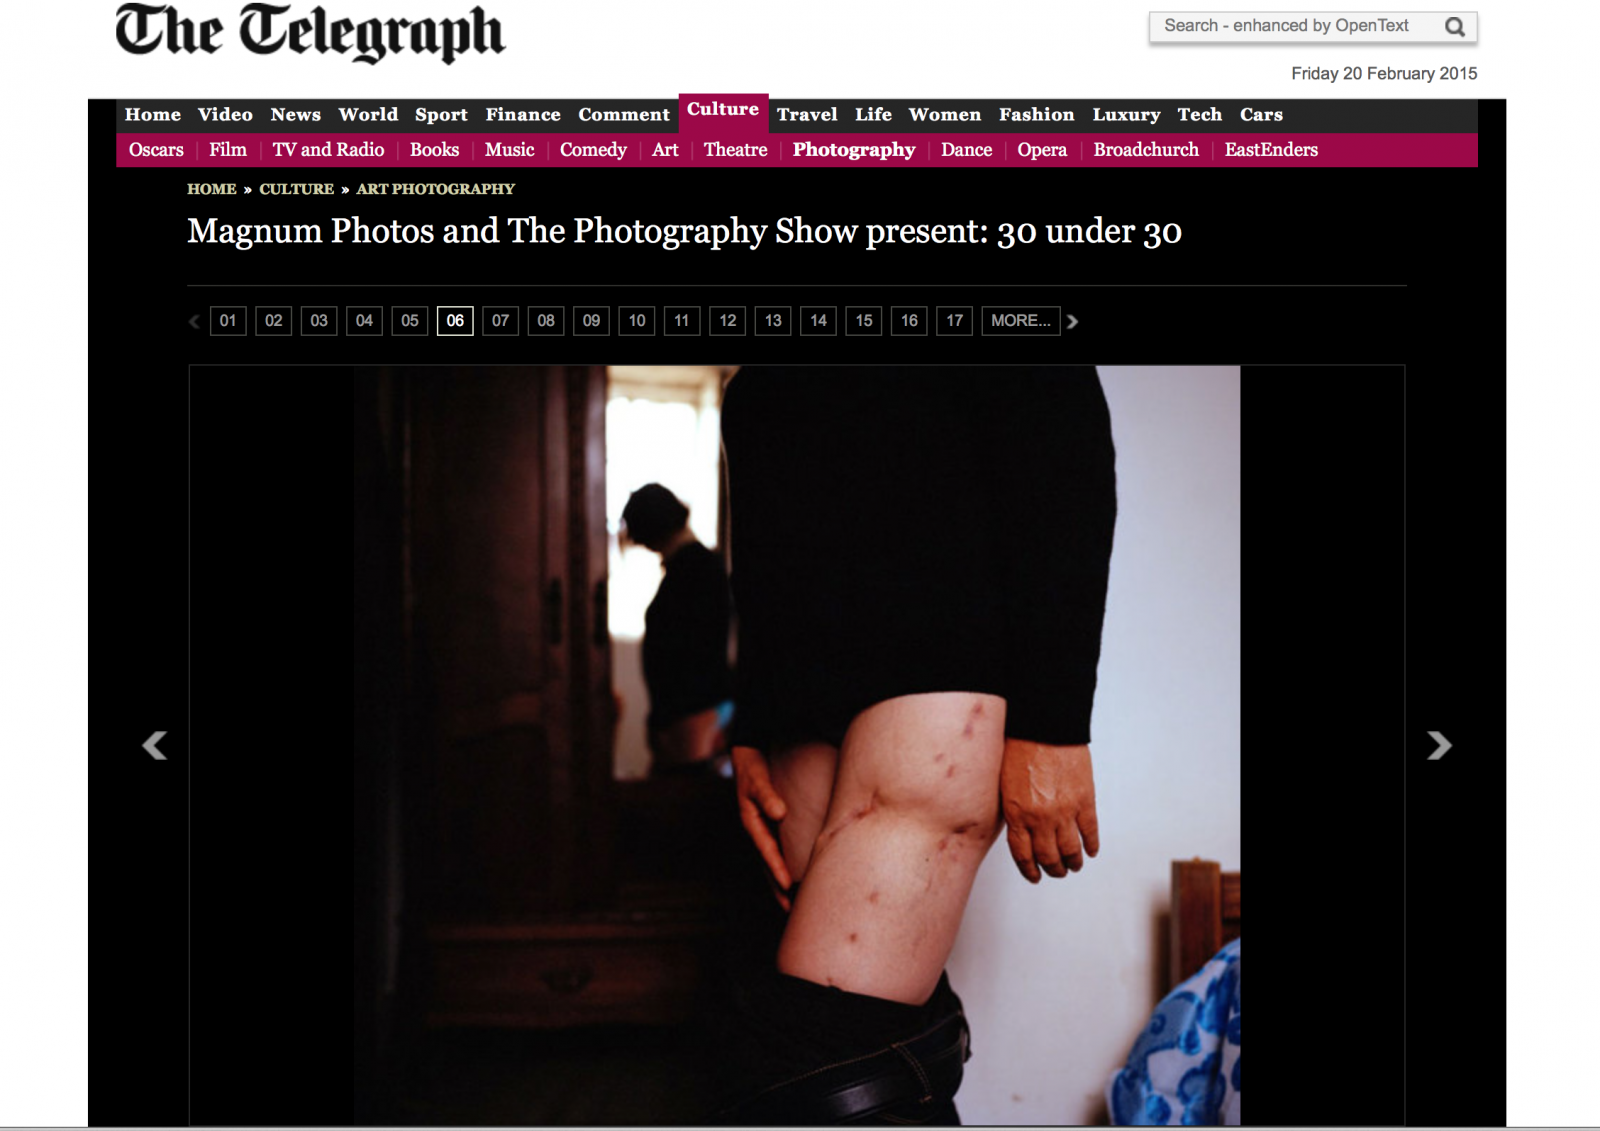 Magnum 30 under 30 in The Telegraph. View here